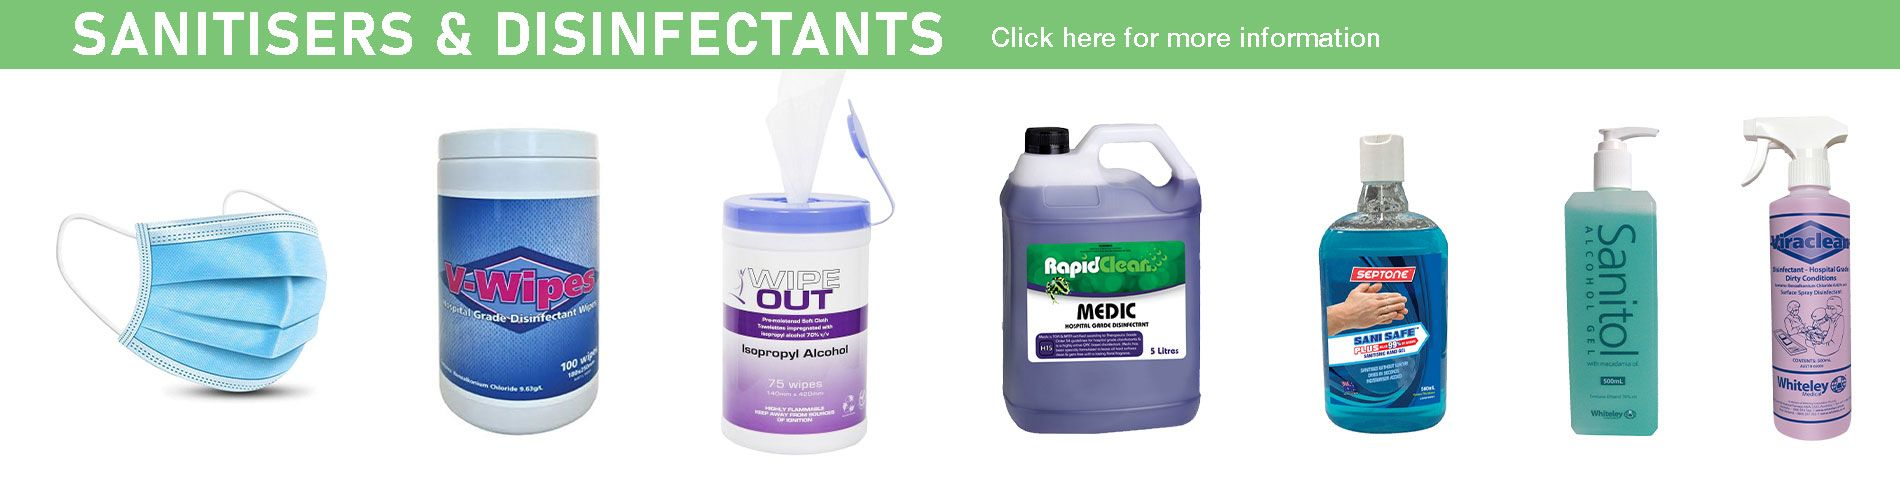 Sanitisters and Disinfectants